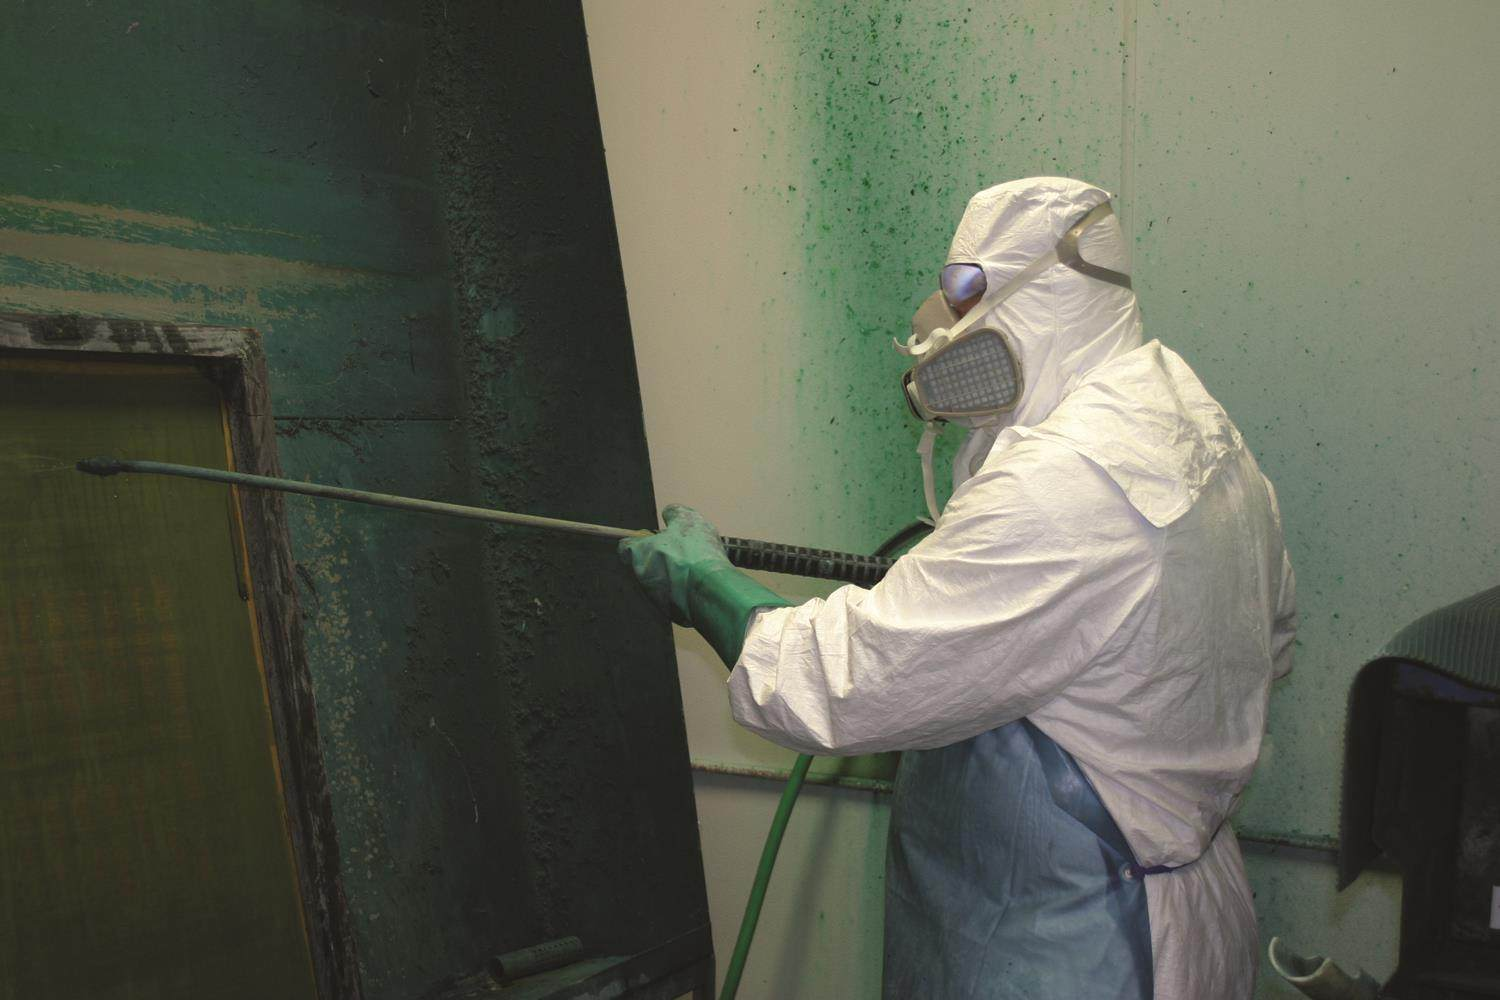 worker wearing disposable white coveralls holding a pressure washer wand